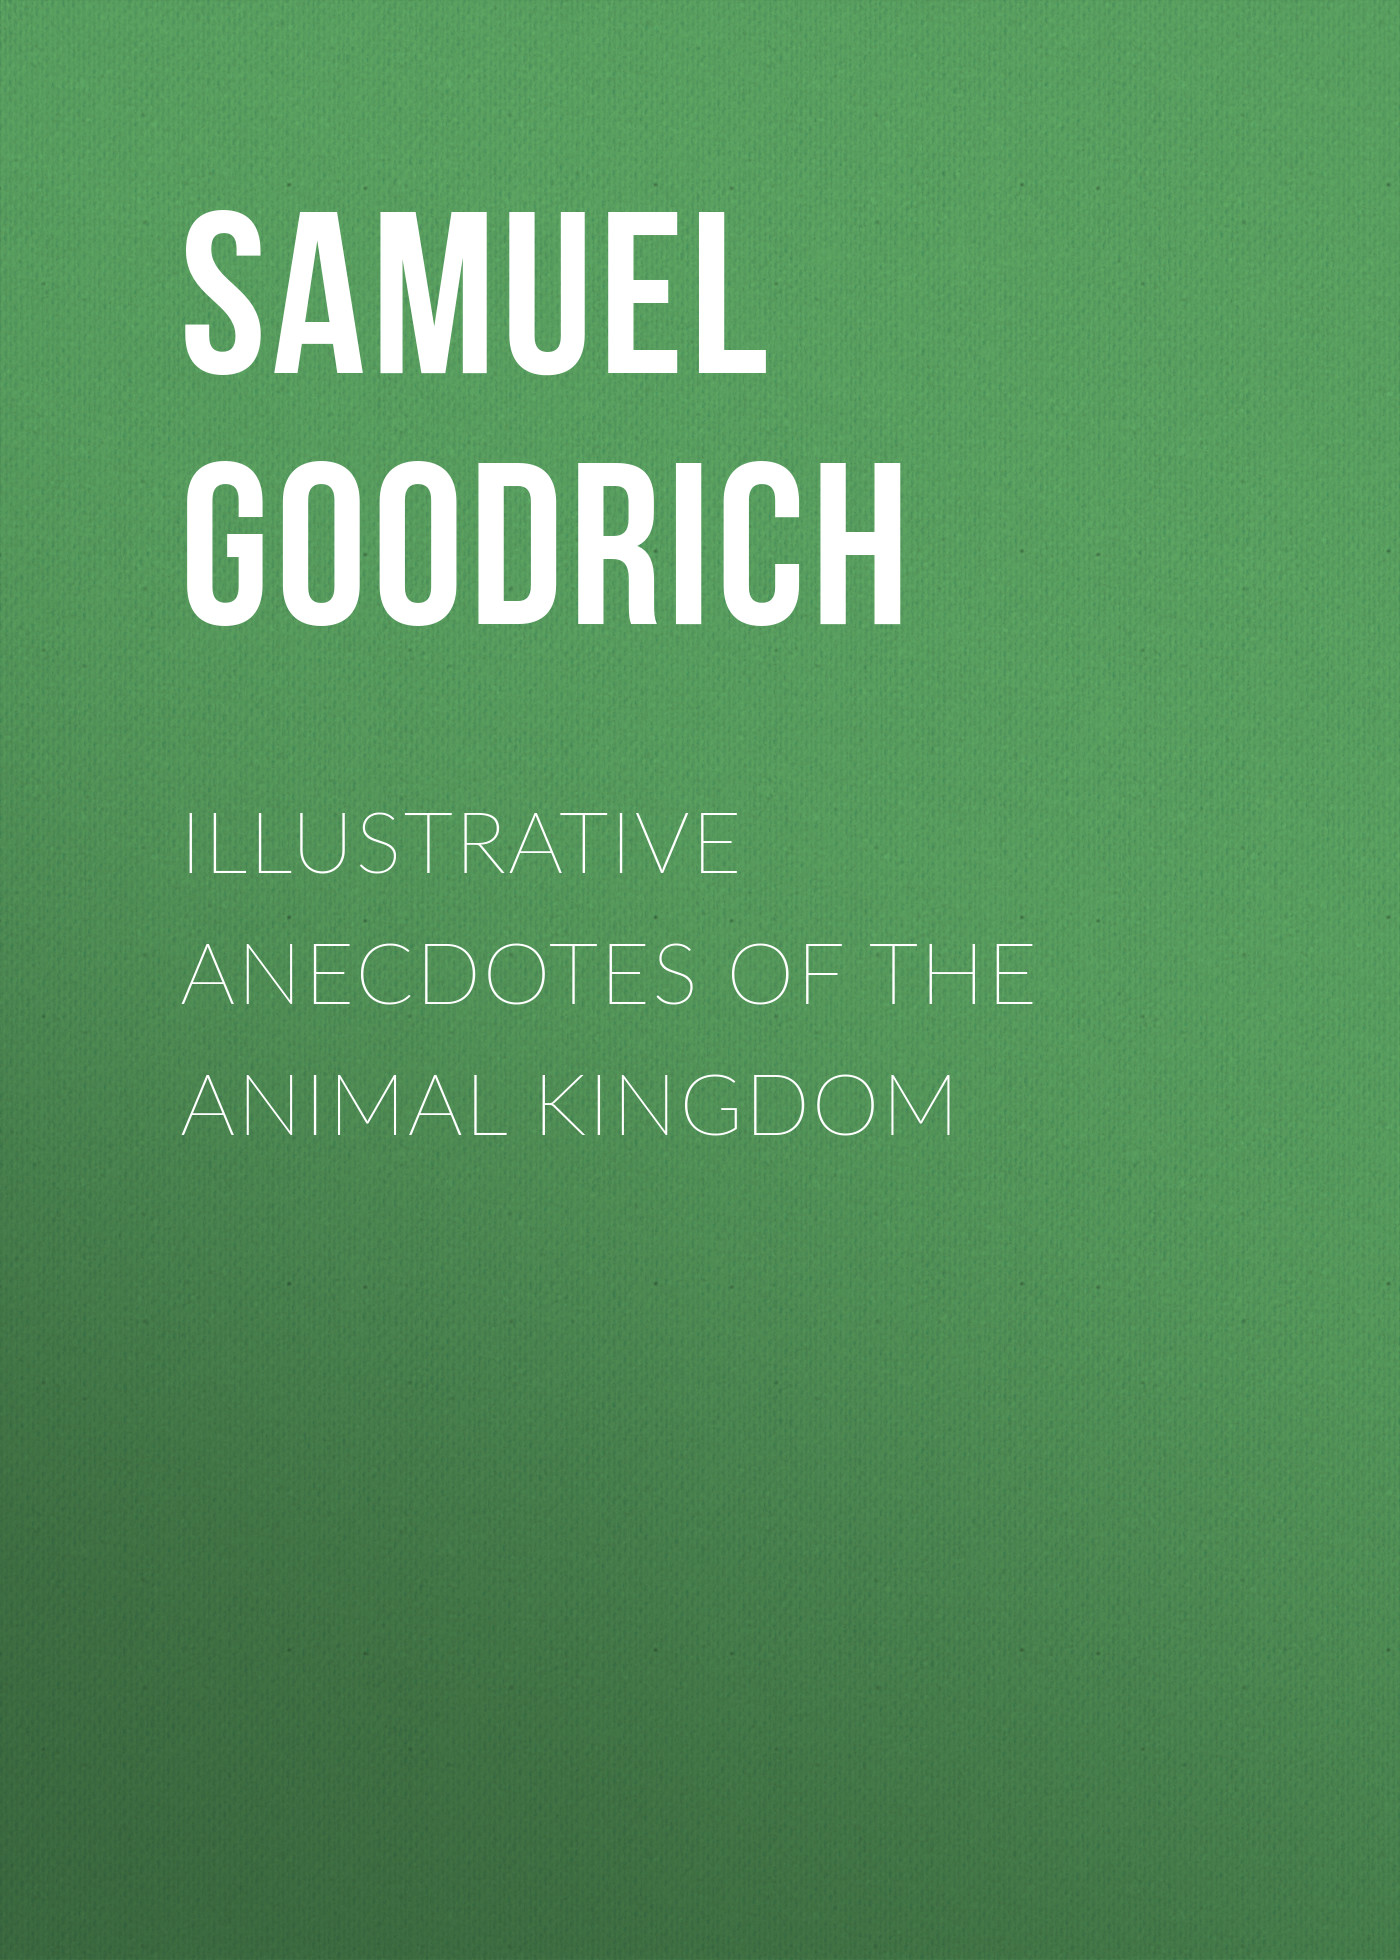 Goodrich Samuel Griswold Illustrative Anecdotes of the Animal Kingdom assembly of divines shorter catech the shorter catechism with proofs analyses and illustrative anecdotes c